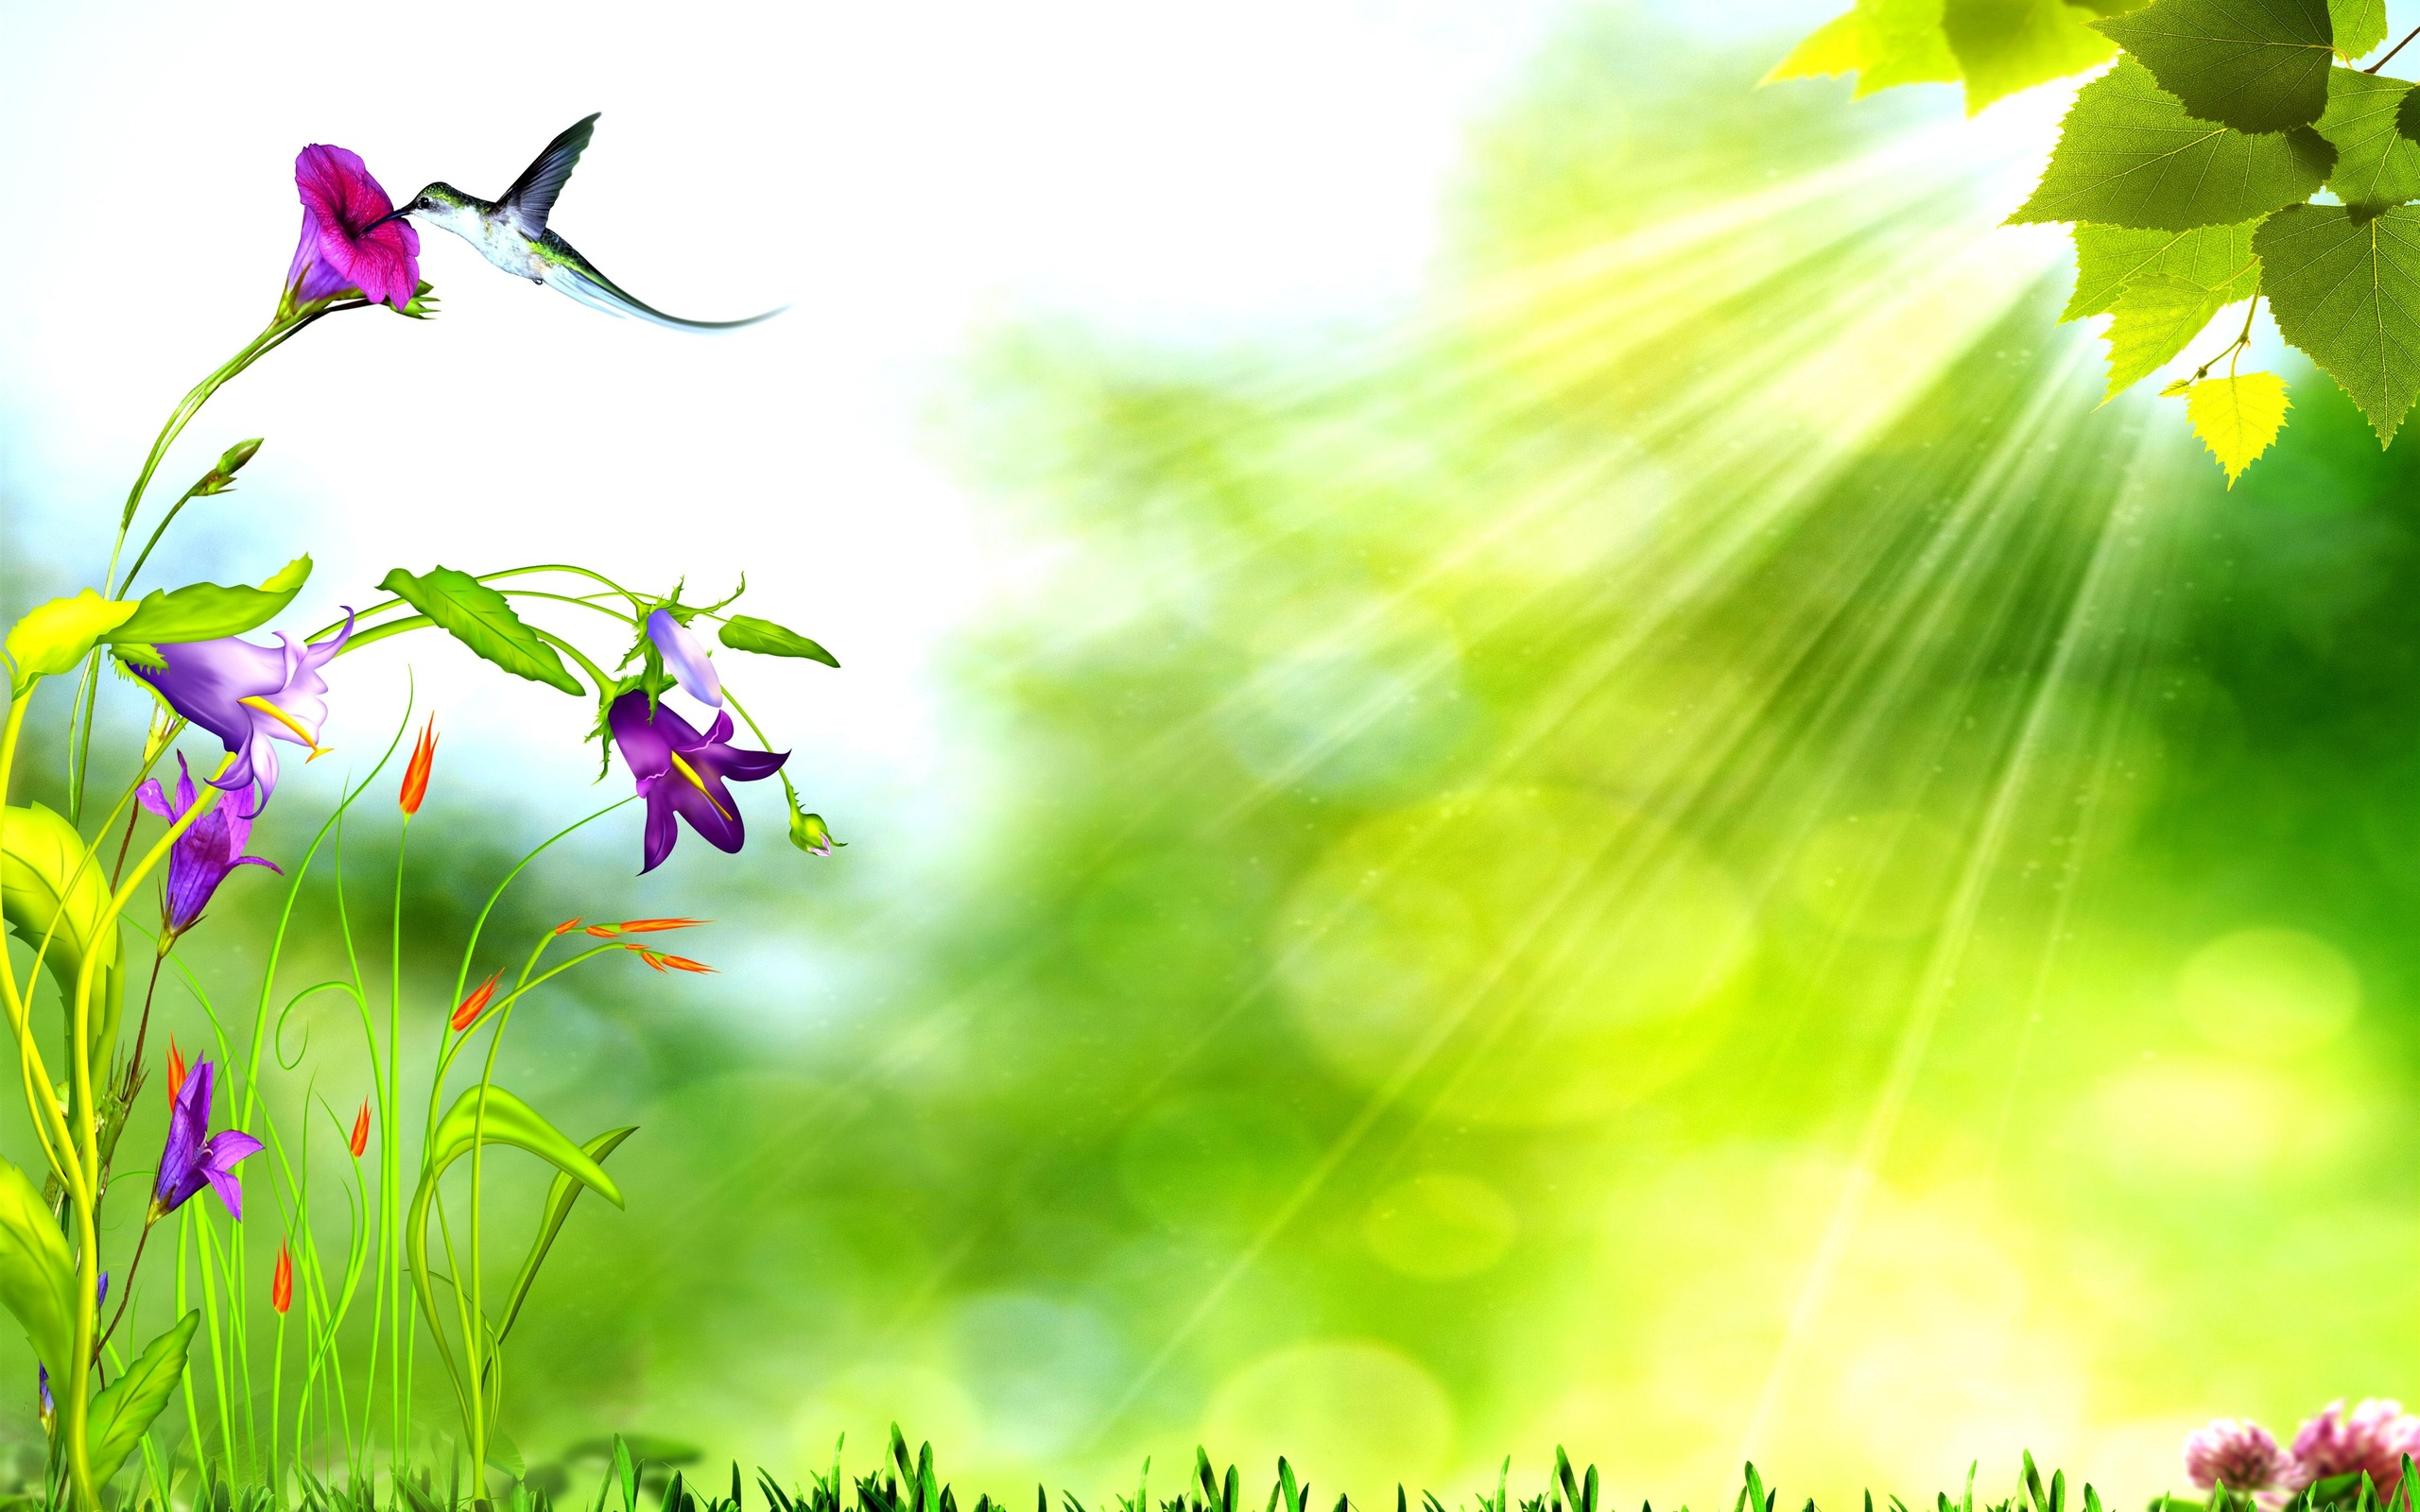 Nature background photo